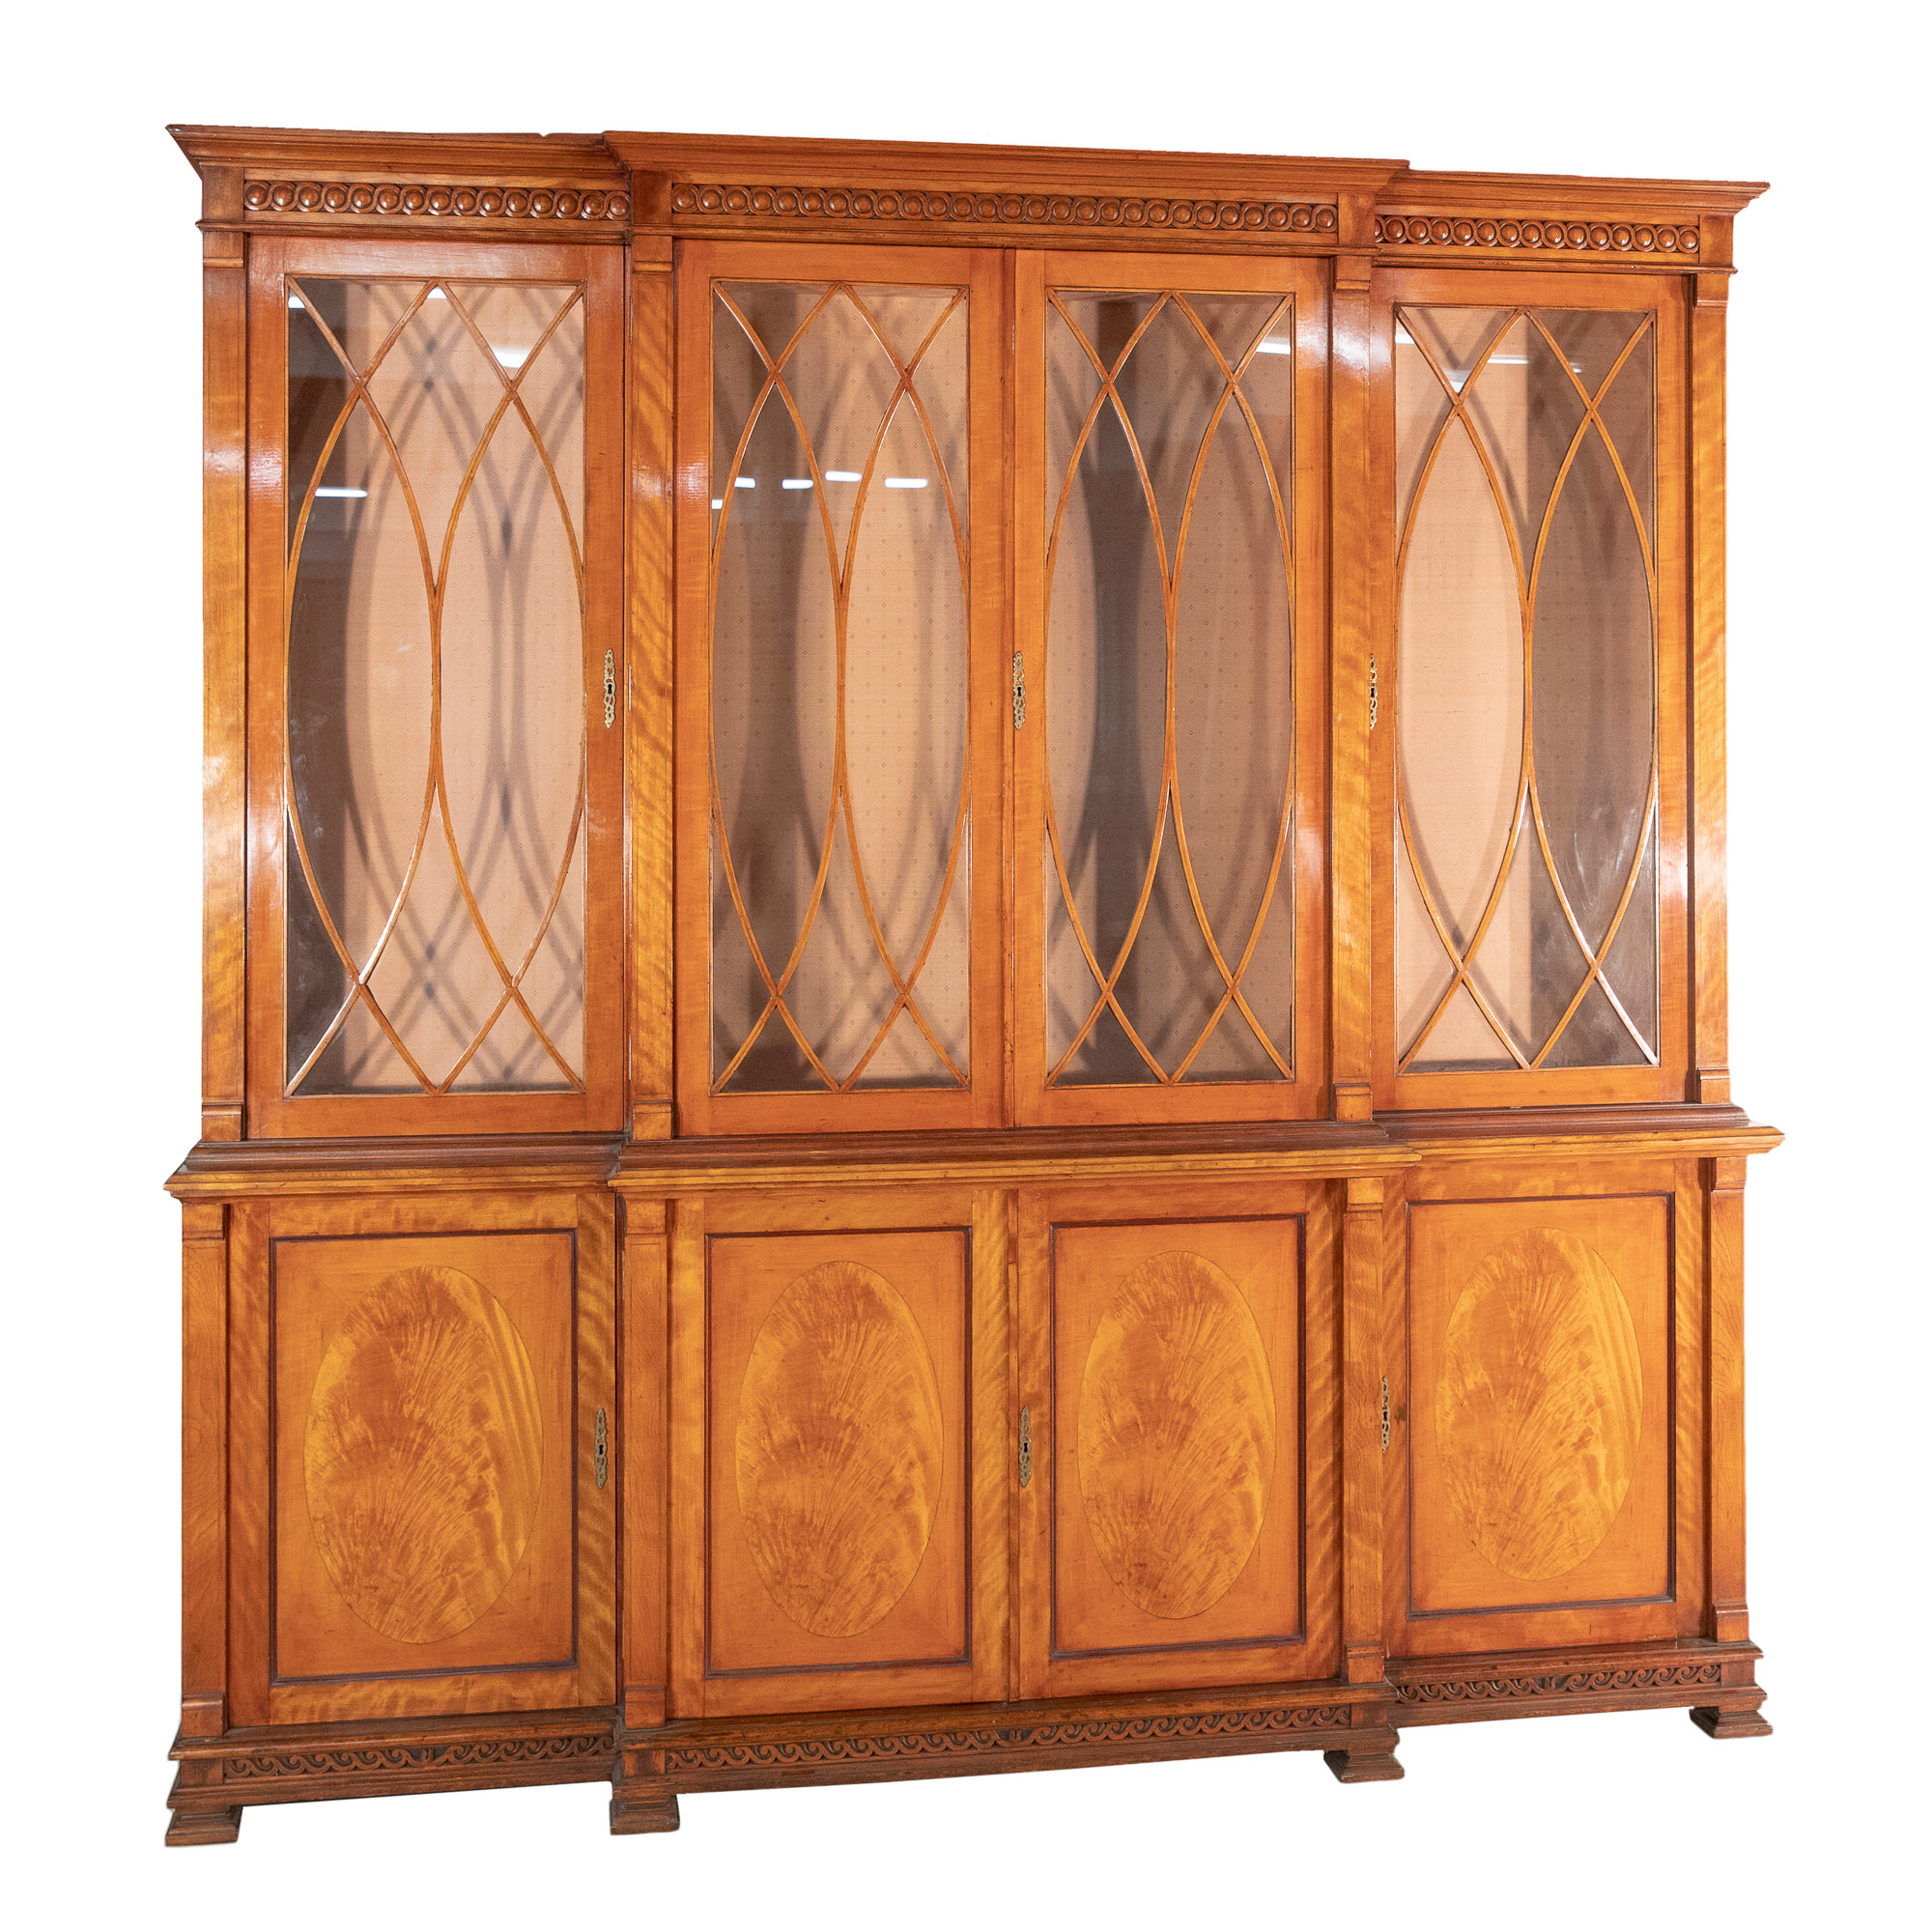 'Large Sheraton Revival Satinwood Breakfront Display Cabinet Bookcase 20th Century'